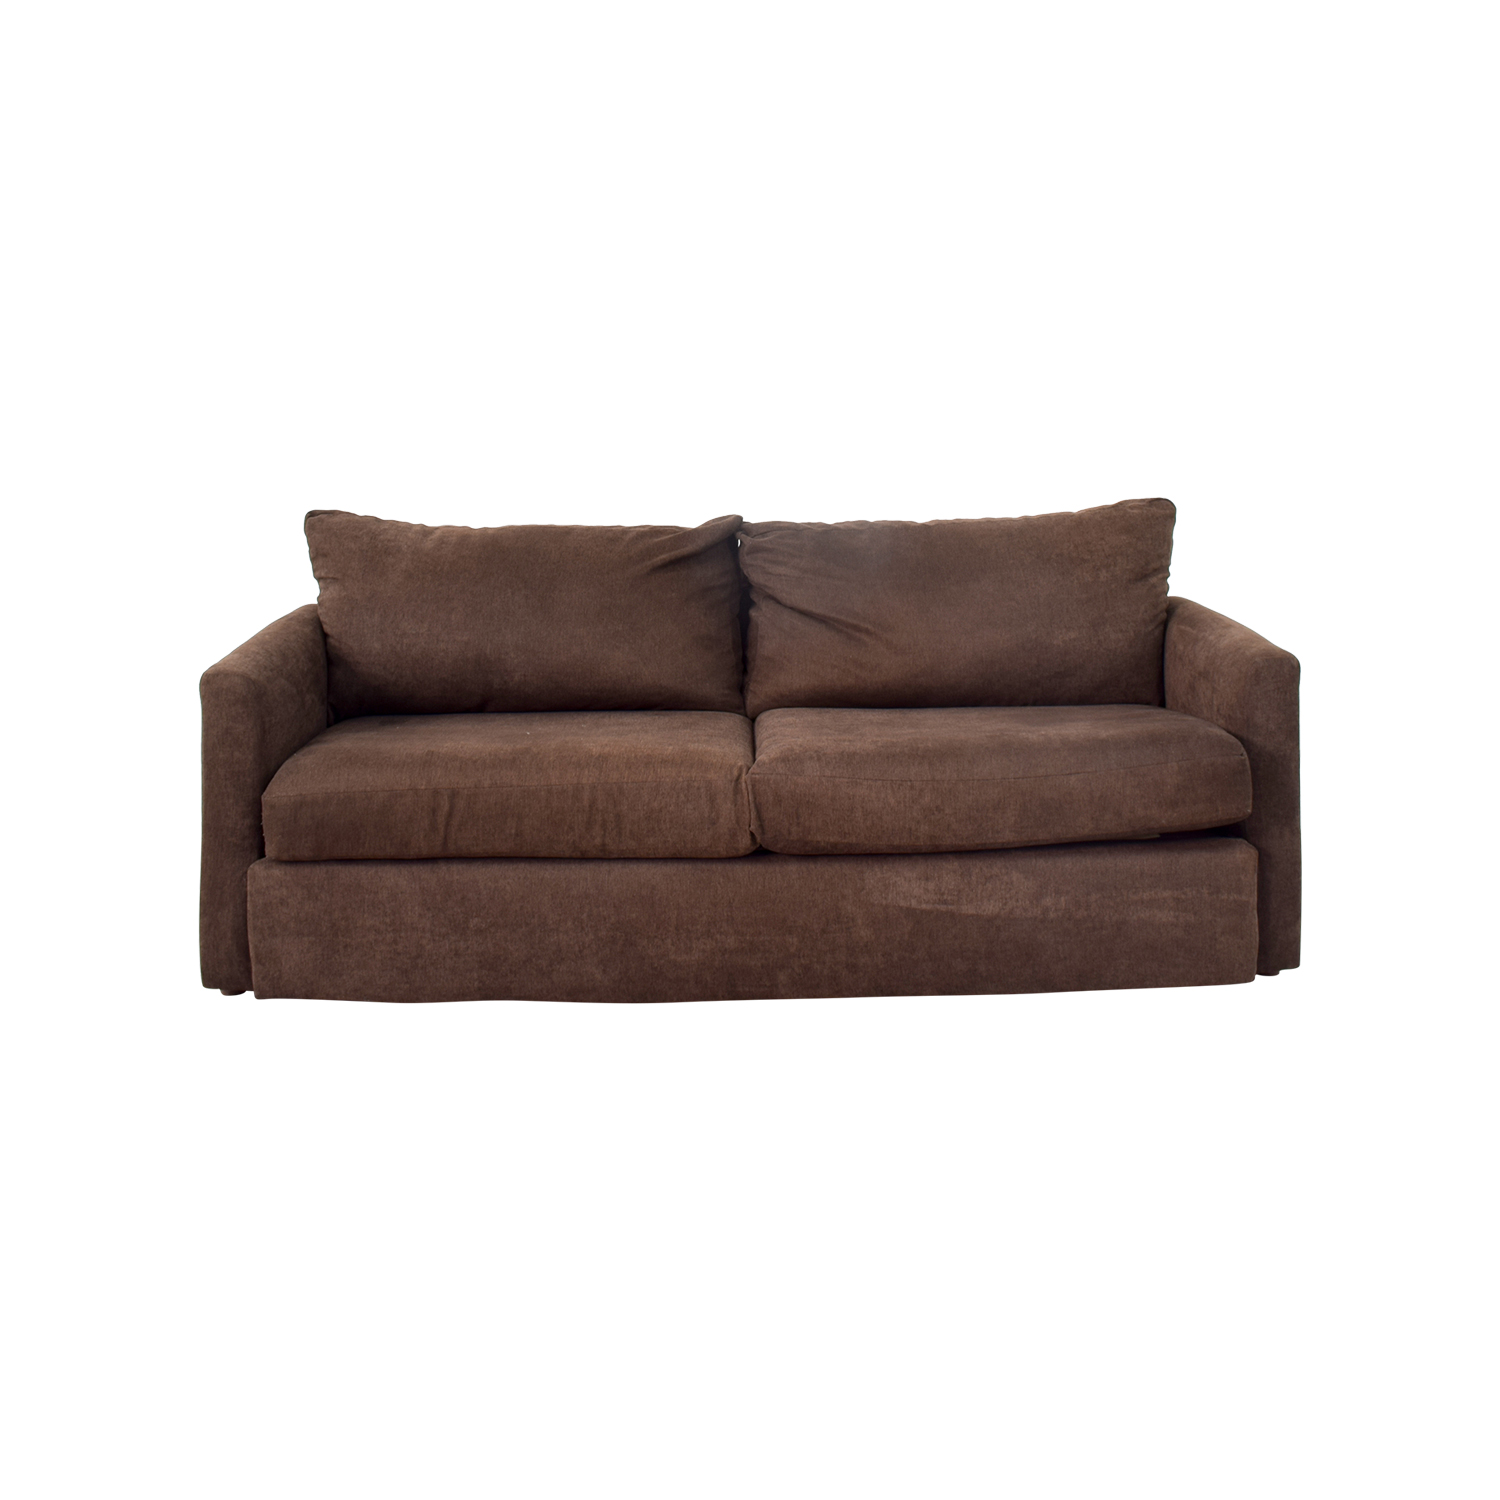 shop Bob's Furniture Brown Loveseat Bob's Furniture Loveseats